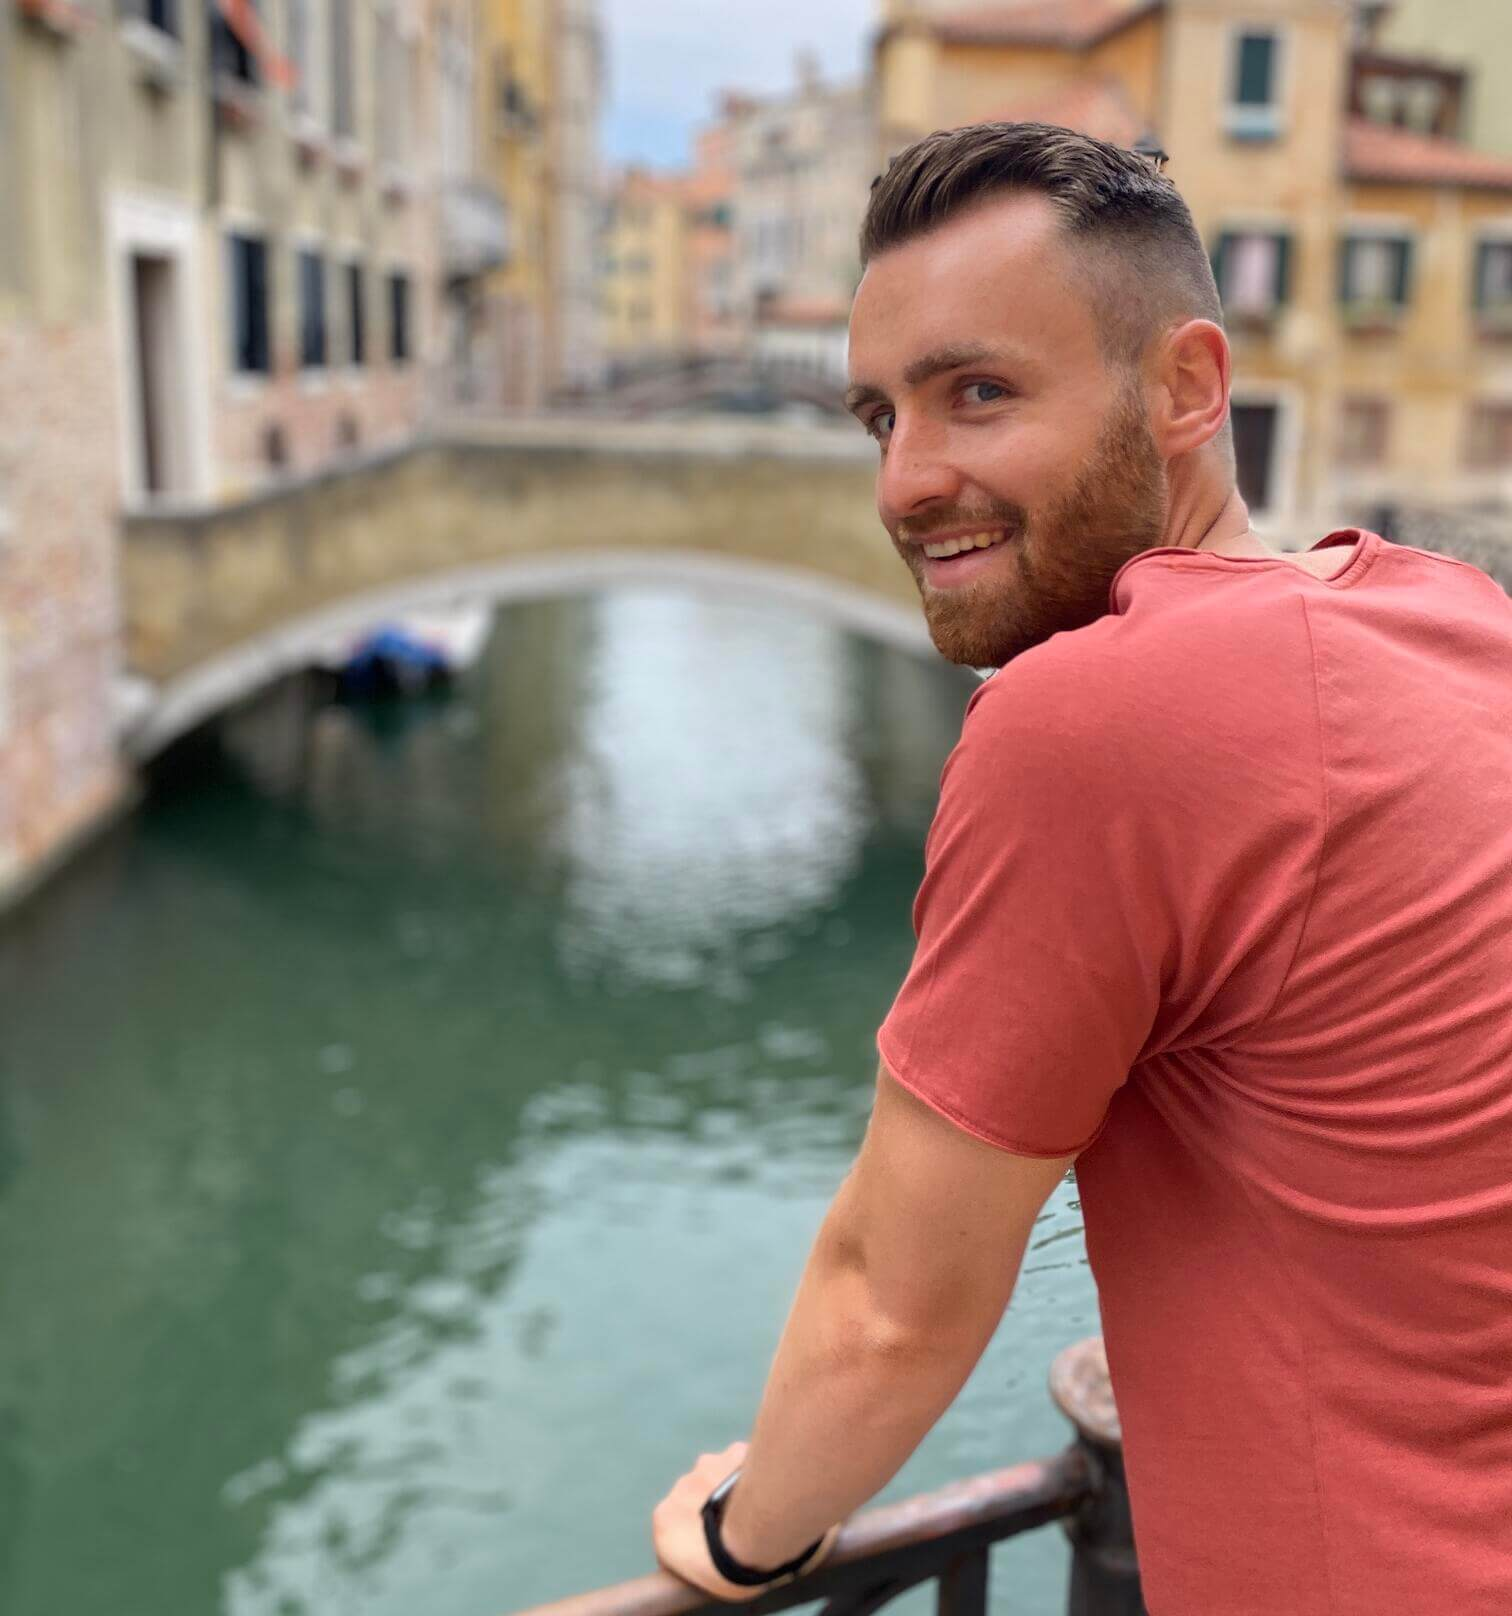 keylight project manager Florian pictured smiling at a water canal in Venice, Italy